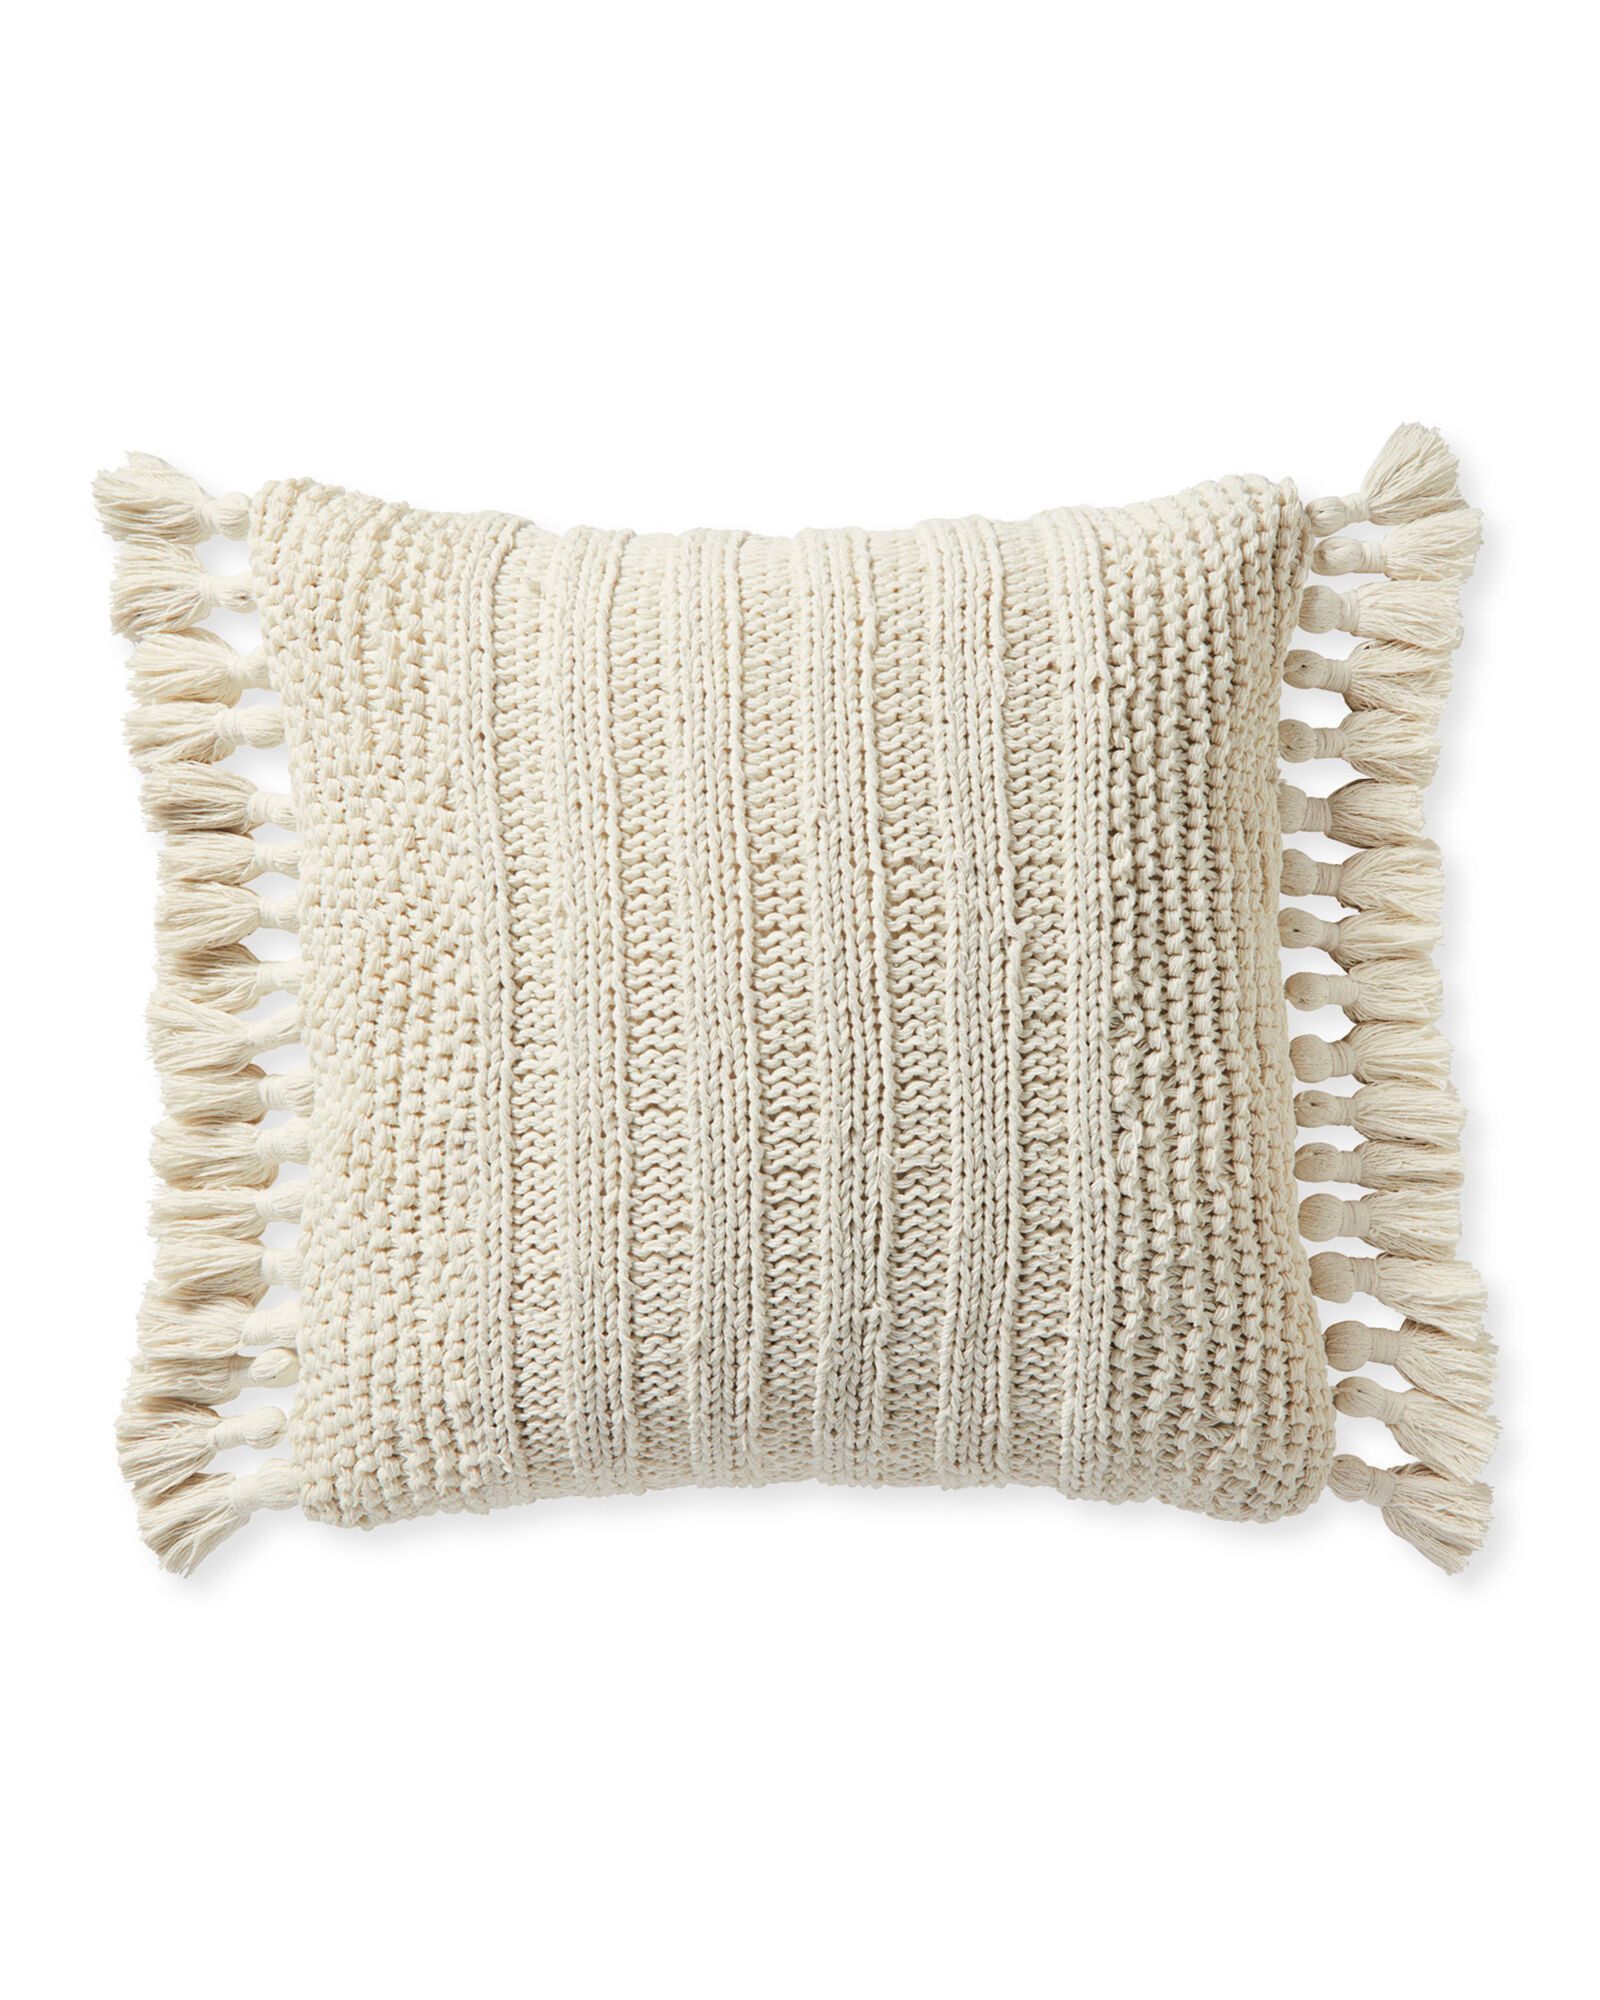 Sequoia Pillow Cover, Ivory